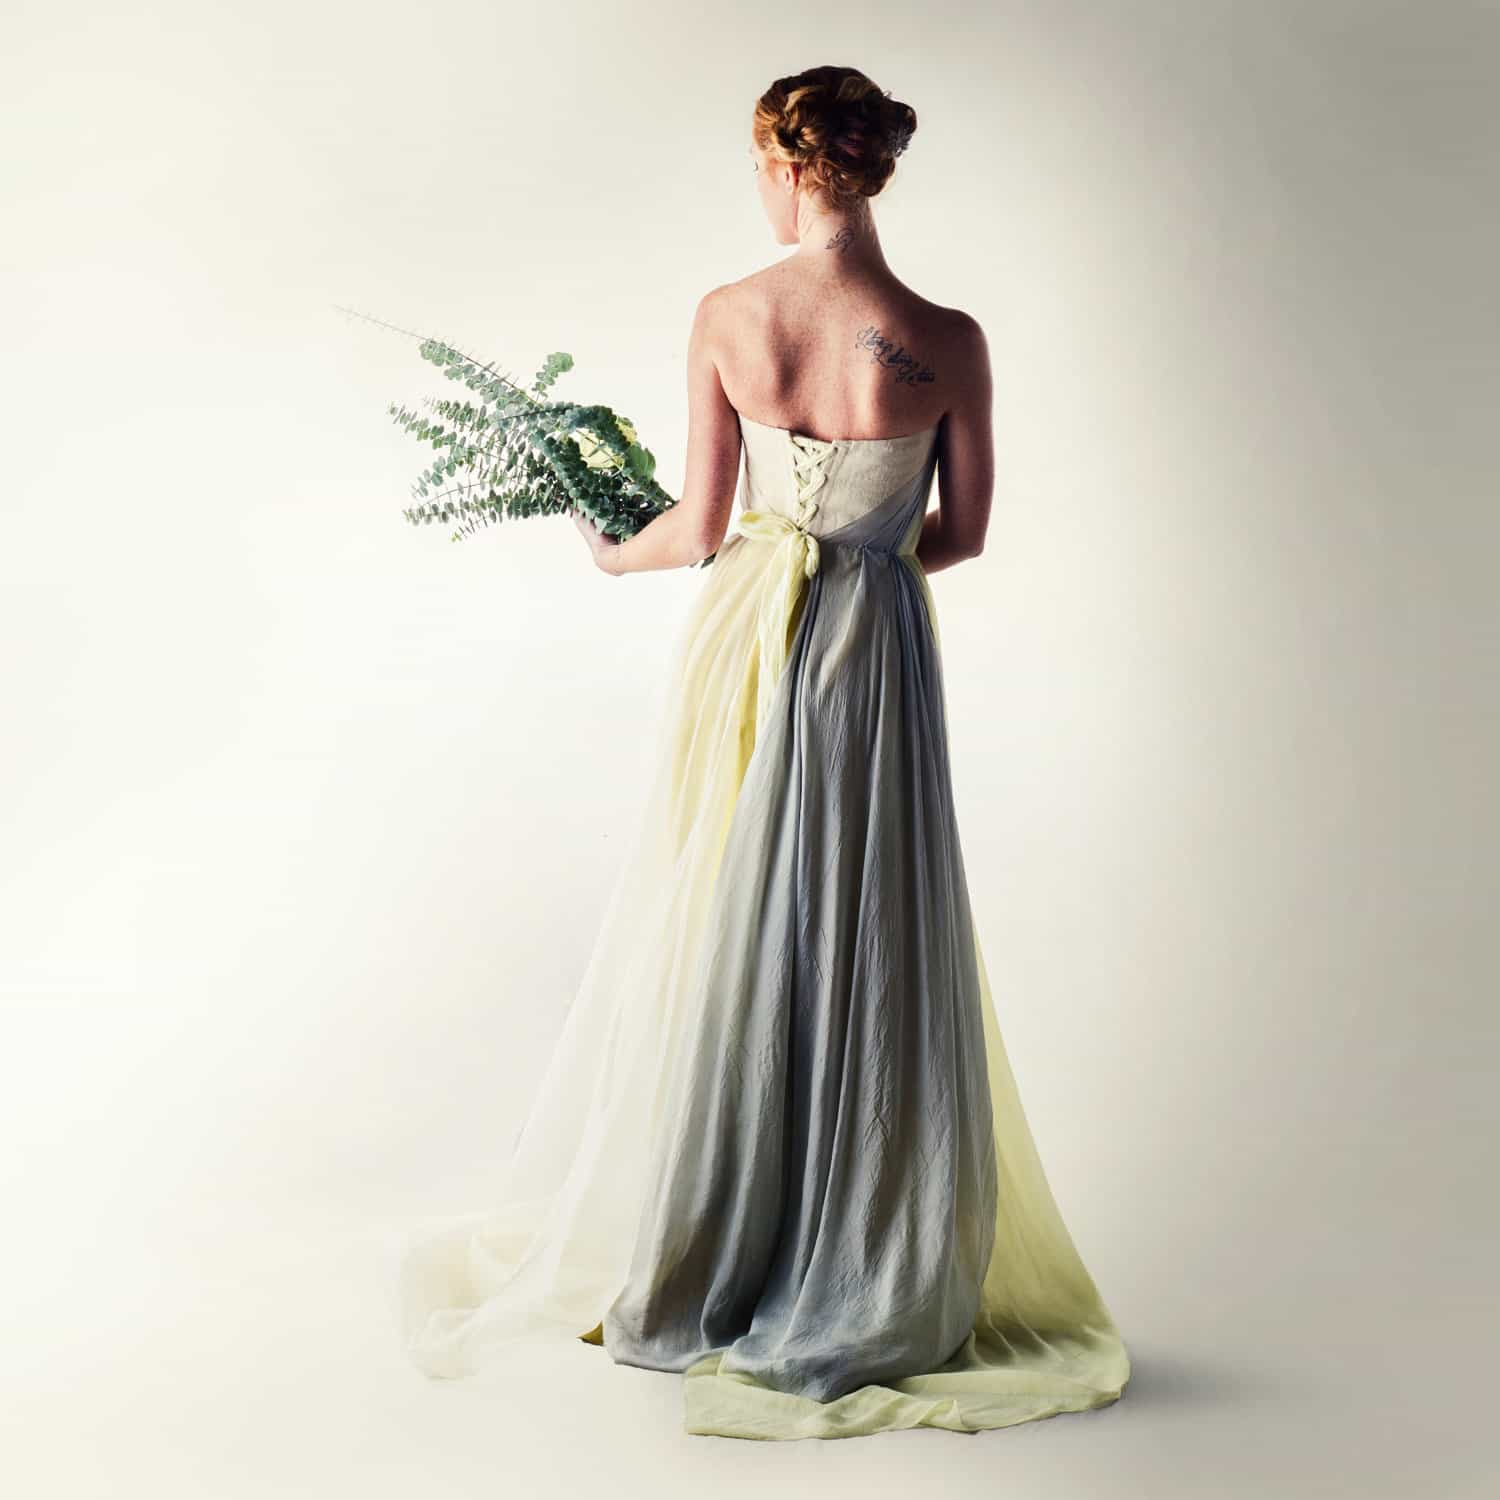 Rudbeckia ~ Naturally dyed wedding dress - Larimeloom